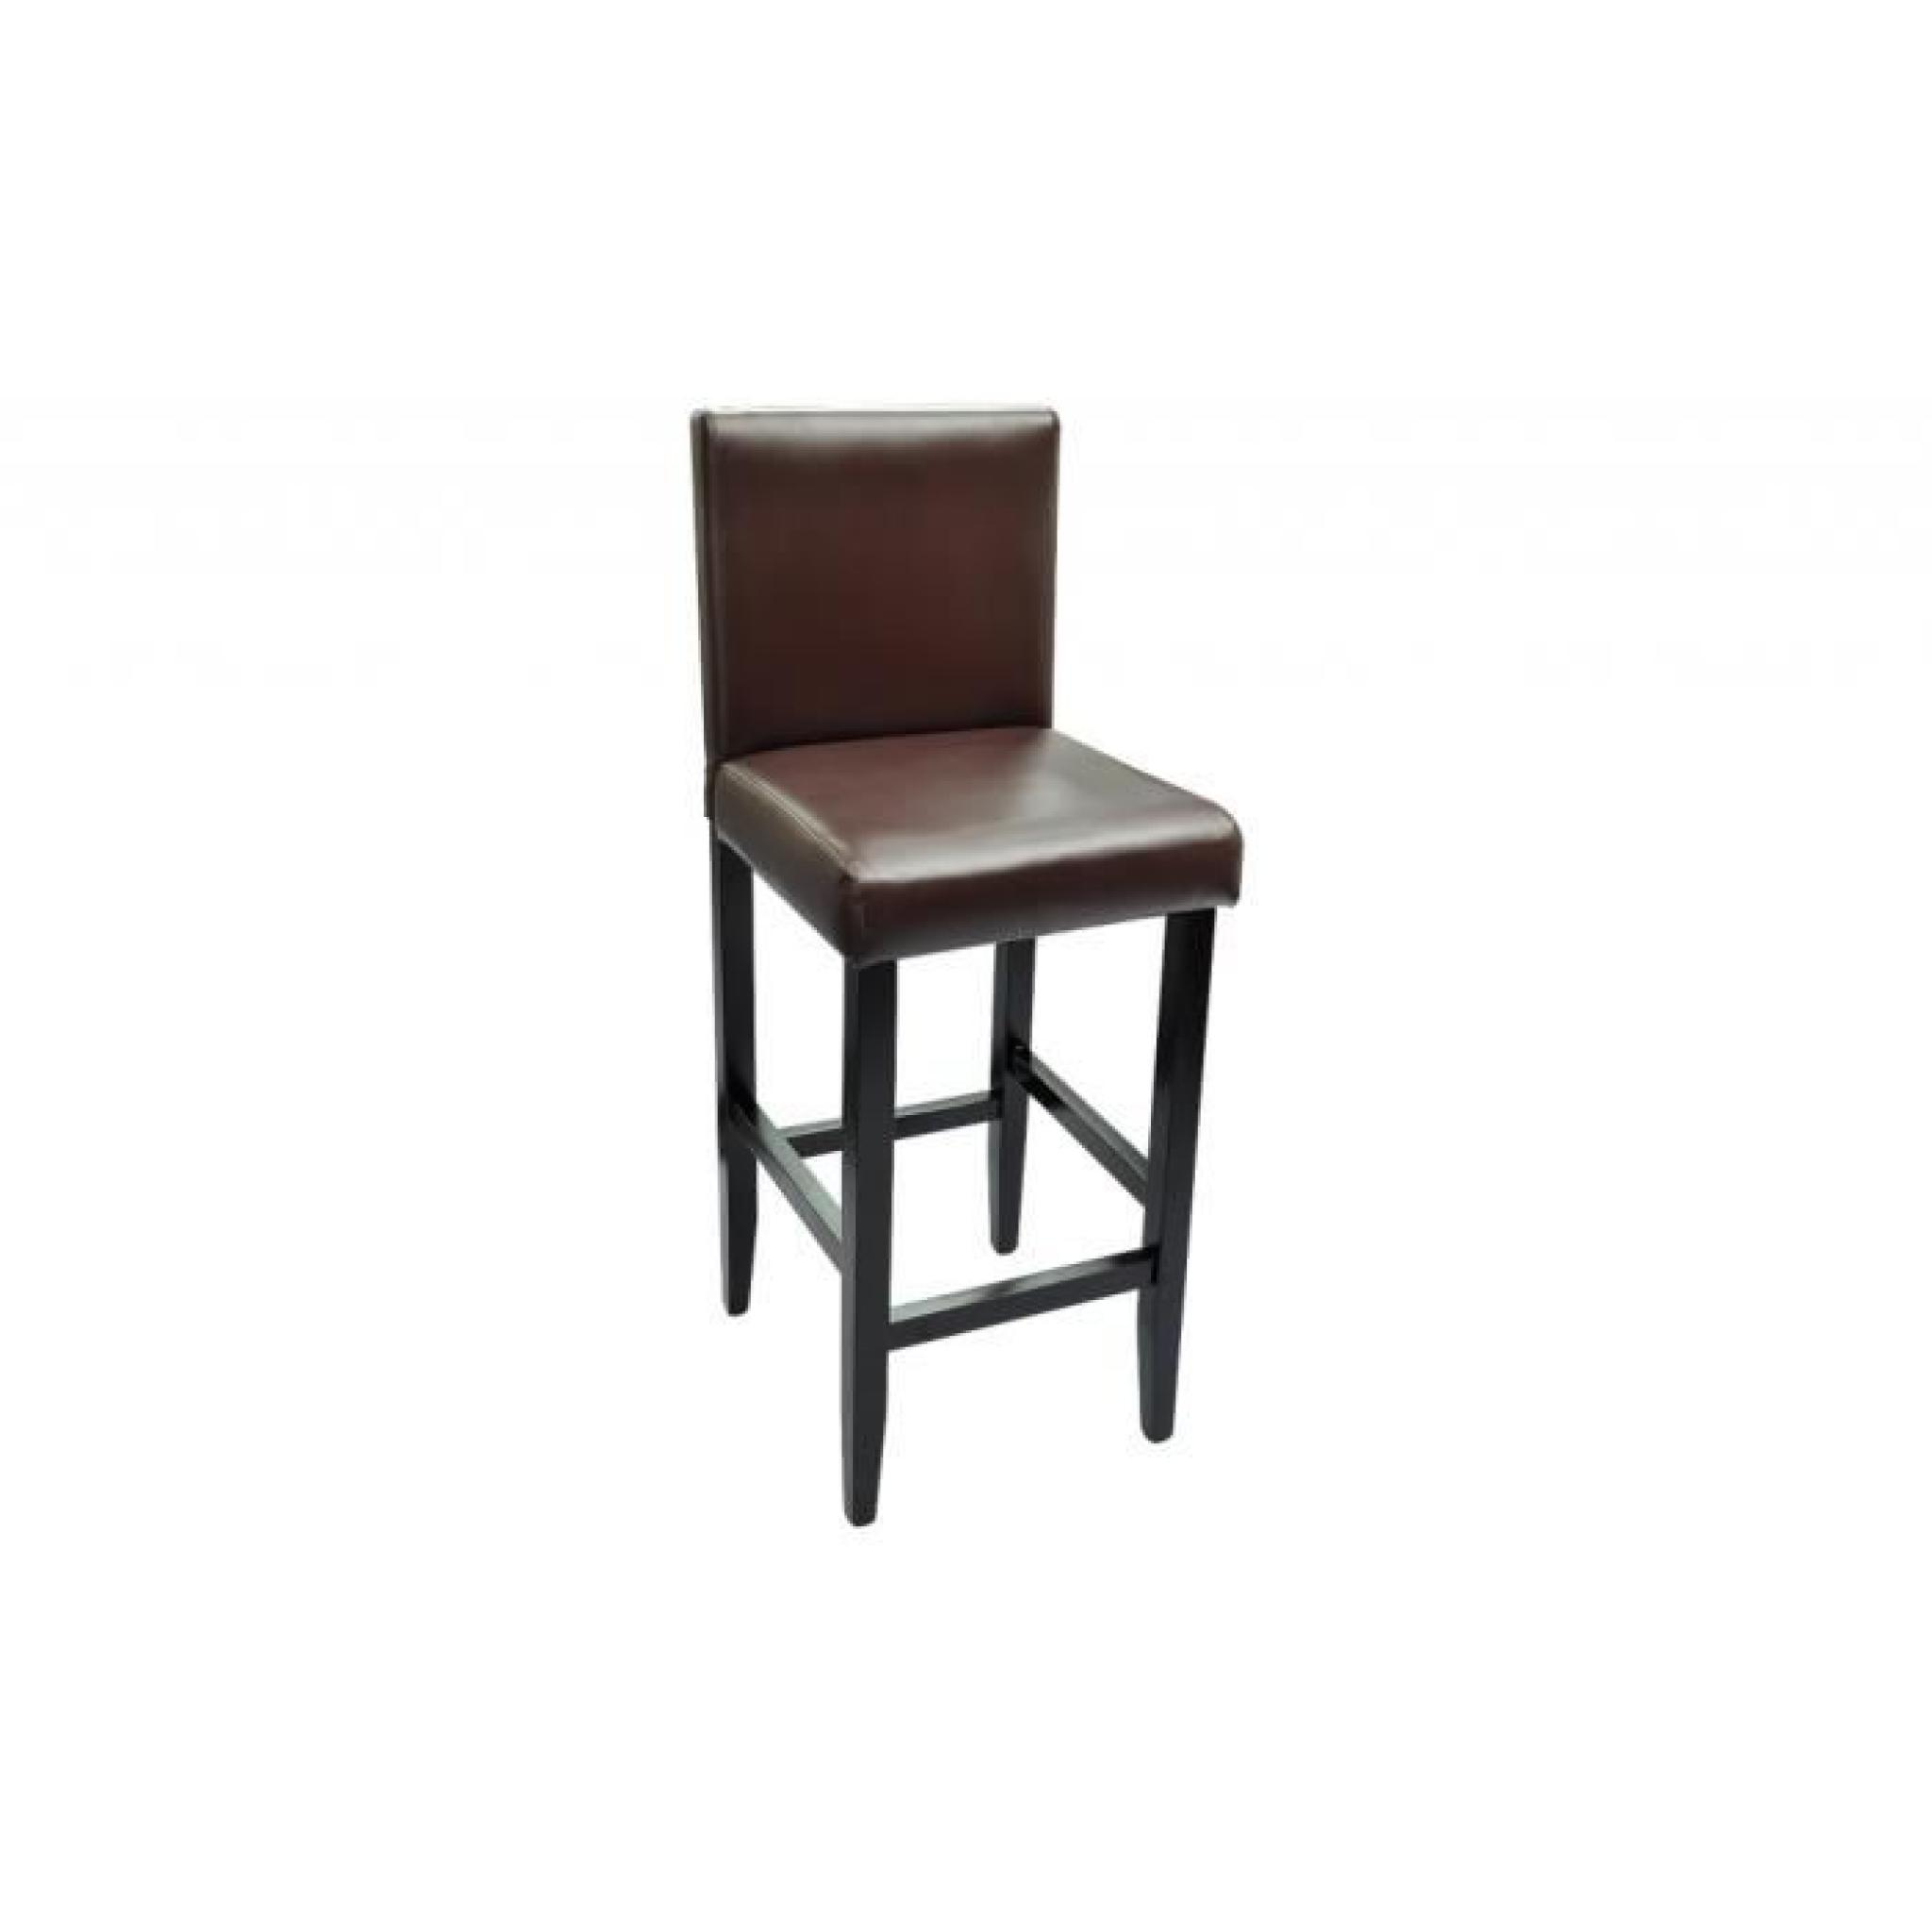 lot de 6 tabourets de bar chicago achat vente tabouret de bar pas cher couleur et. Black Bedroom Furniture Sets. Home Design Ideas